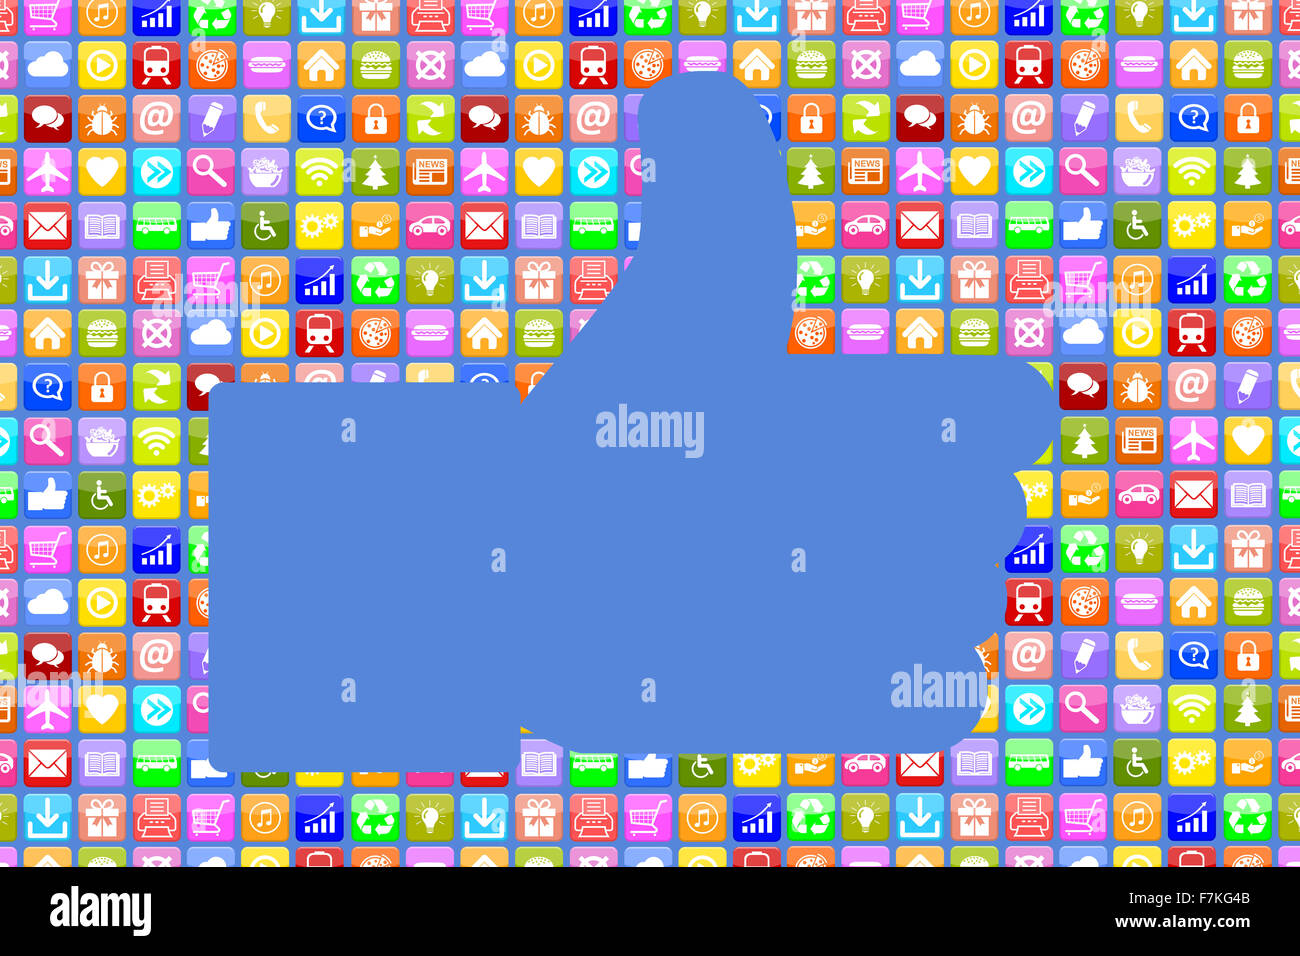 Application Apps App like thumbs up social media network on mobile or smart phone - Stock Image